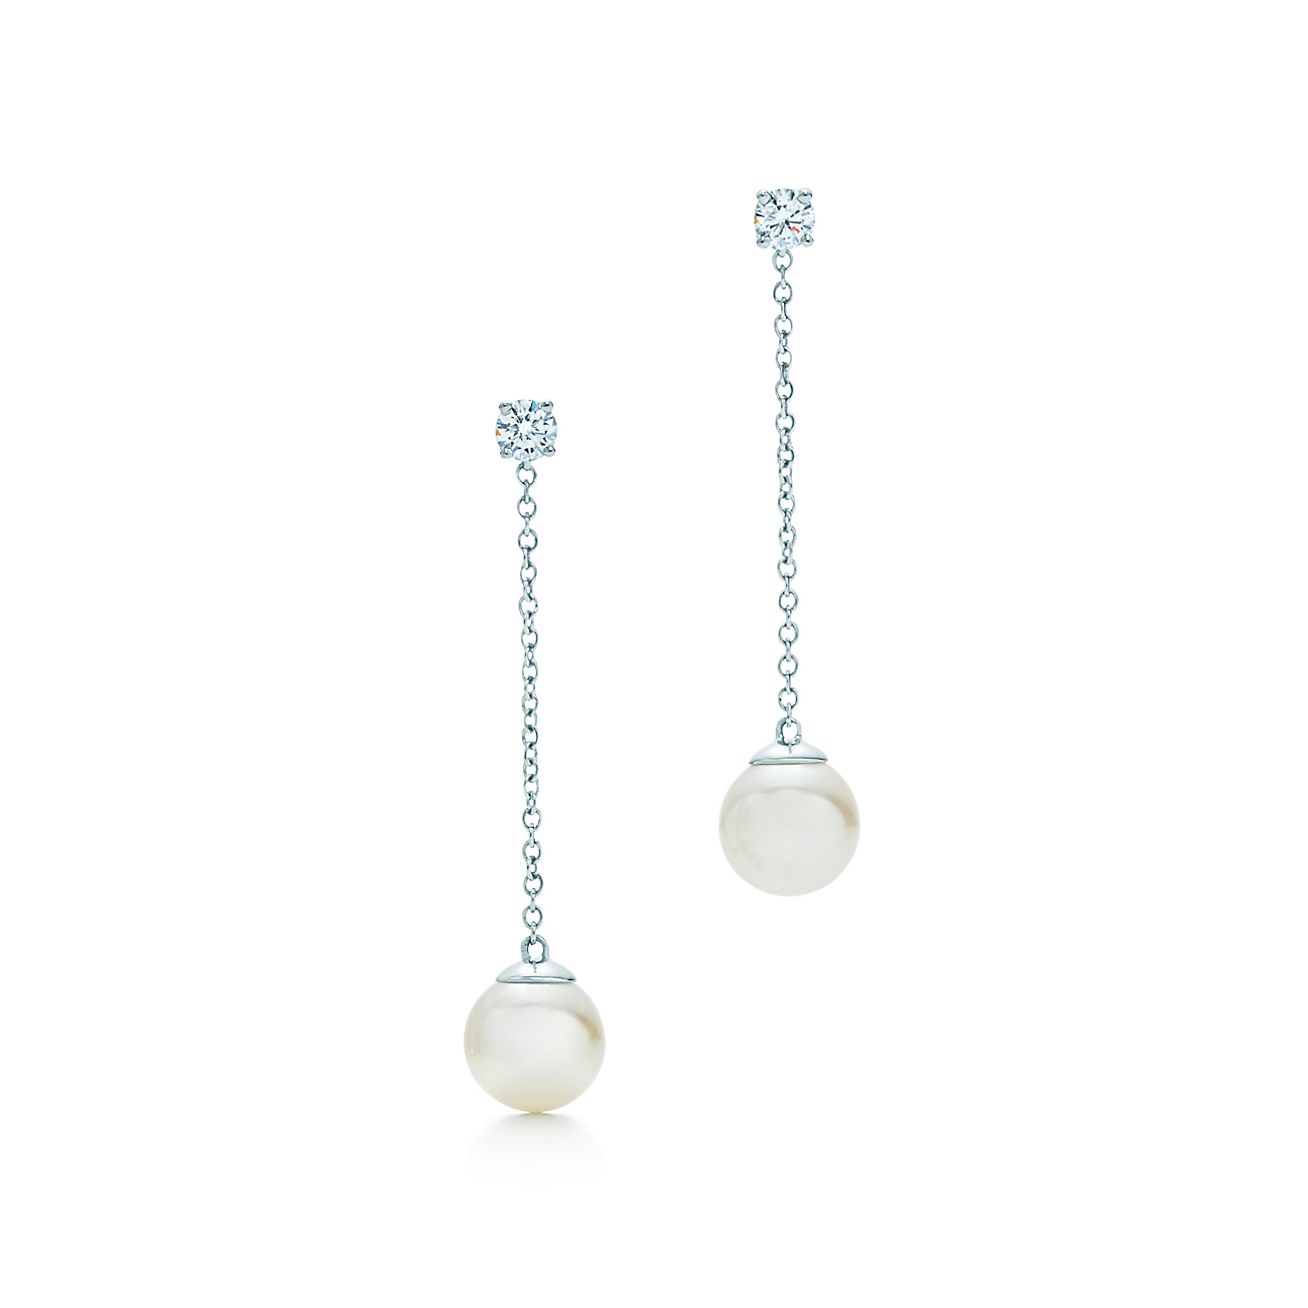 Tiffany Signature Pearls Drop Earrings